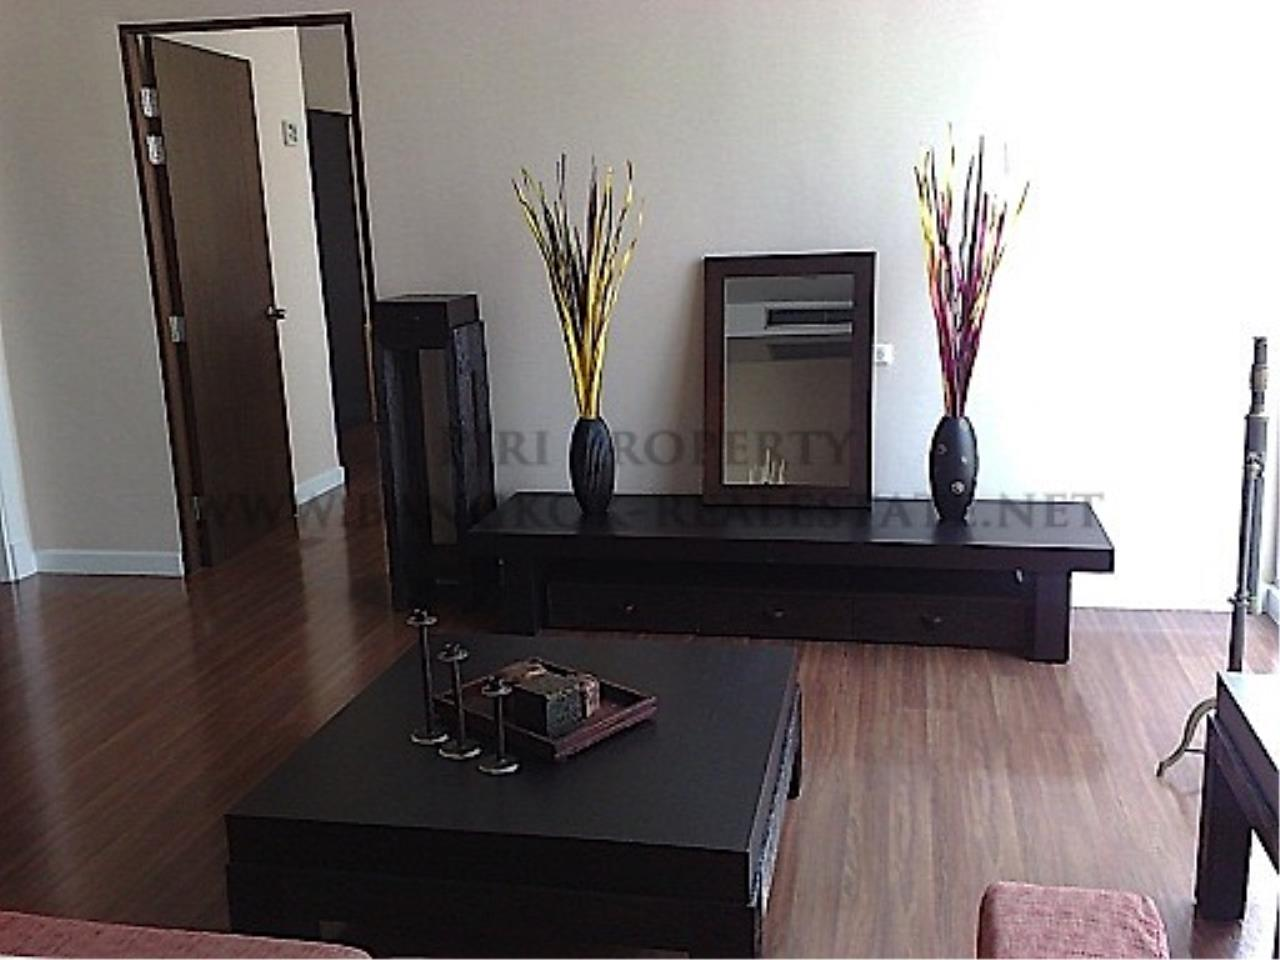 Piri Property Agency's Good View 1 Bedroom Unit next to Soi 11 4